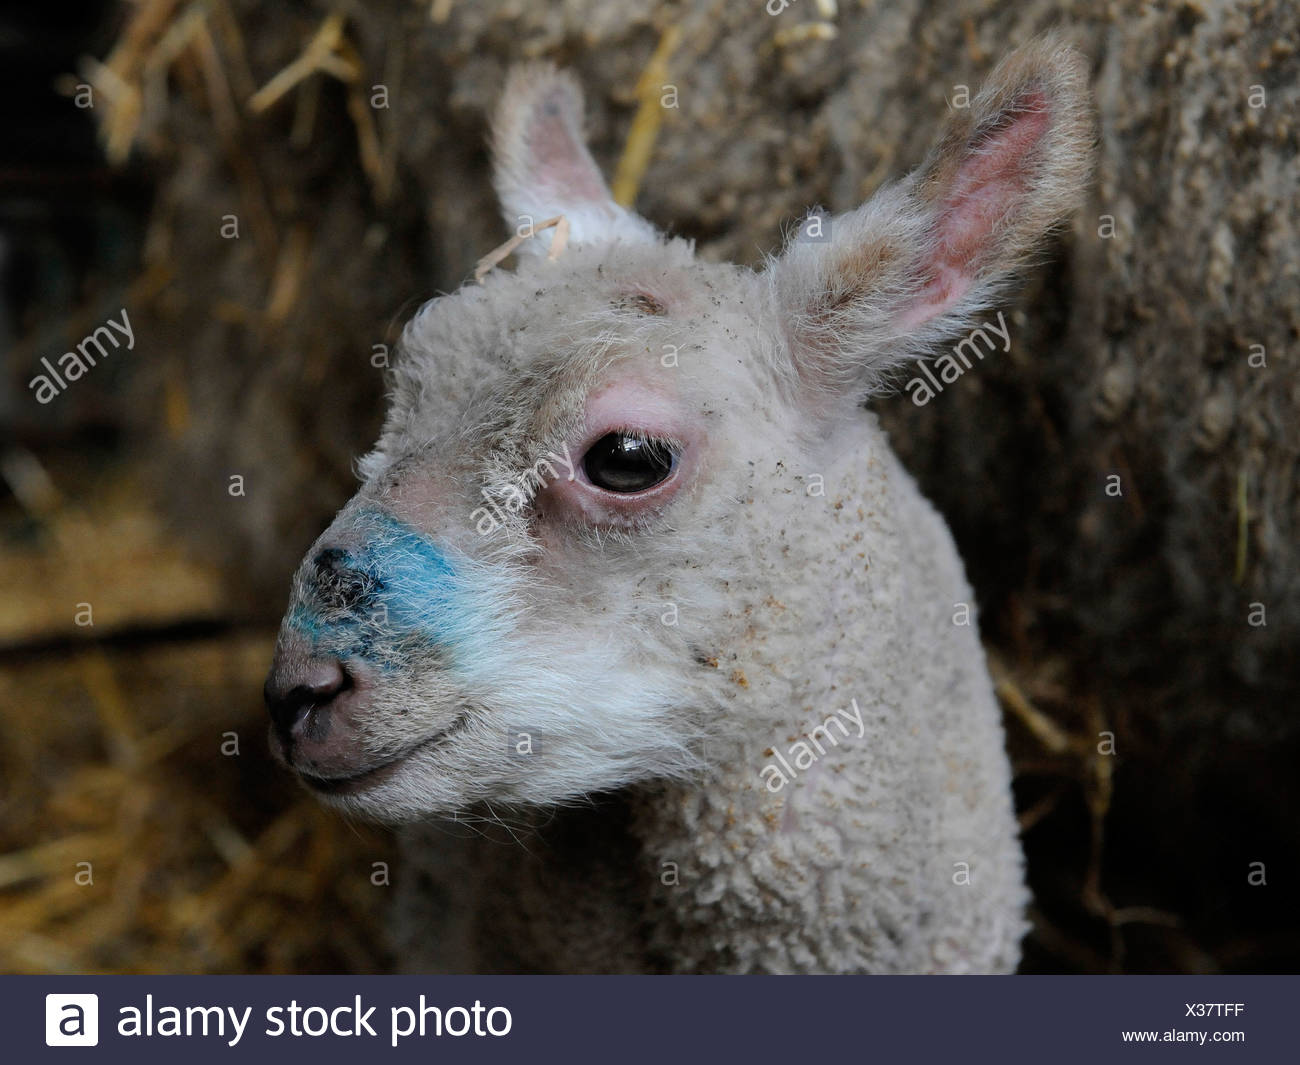 An odd looking baby lamb - Stock Image